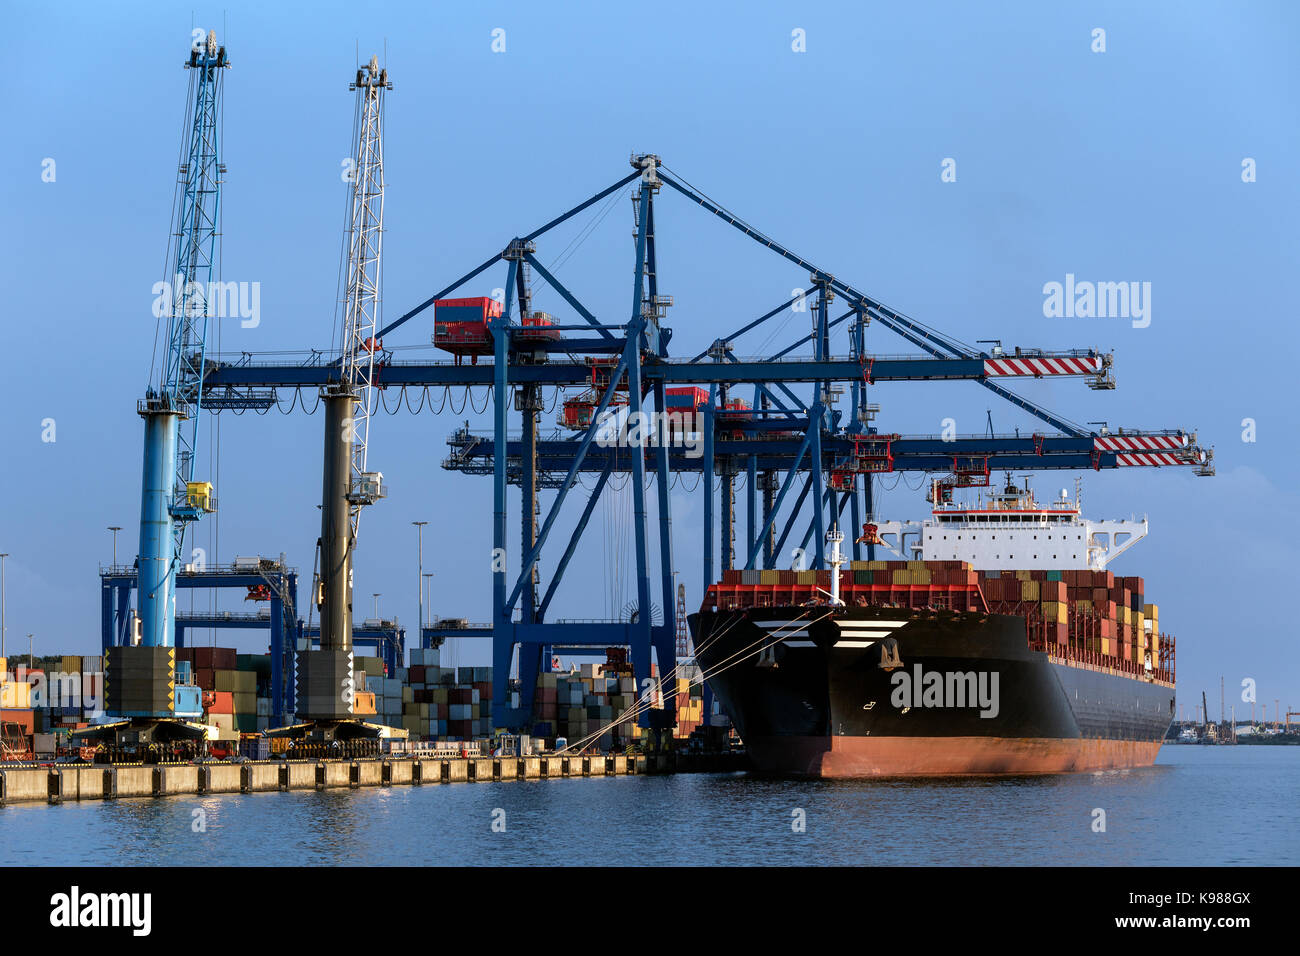 A large container ship unloading in the port of Klaipeda in Lithuania. - Stock Image